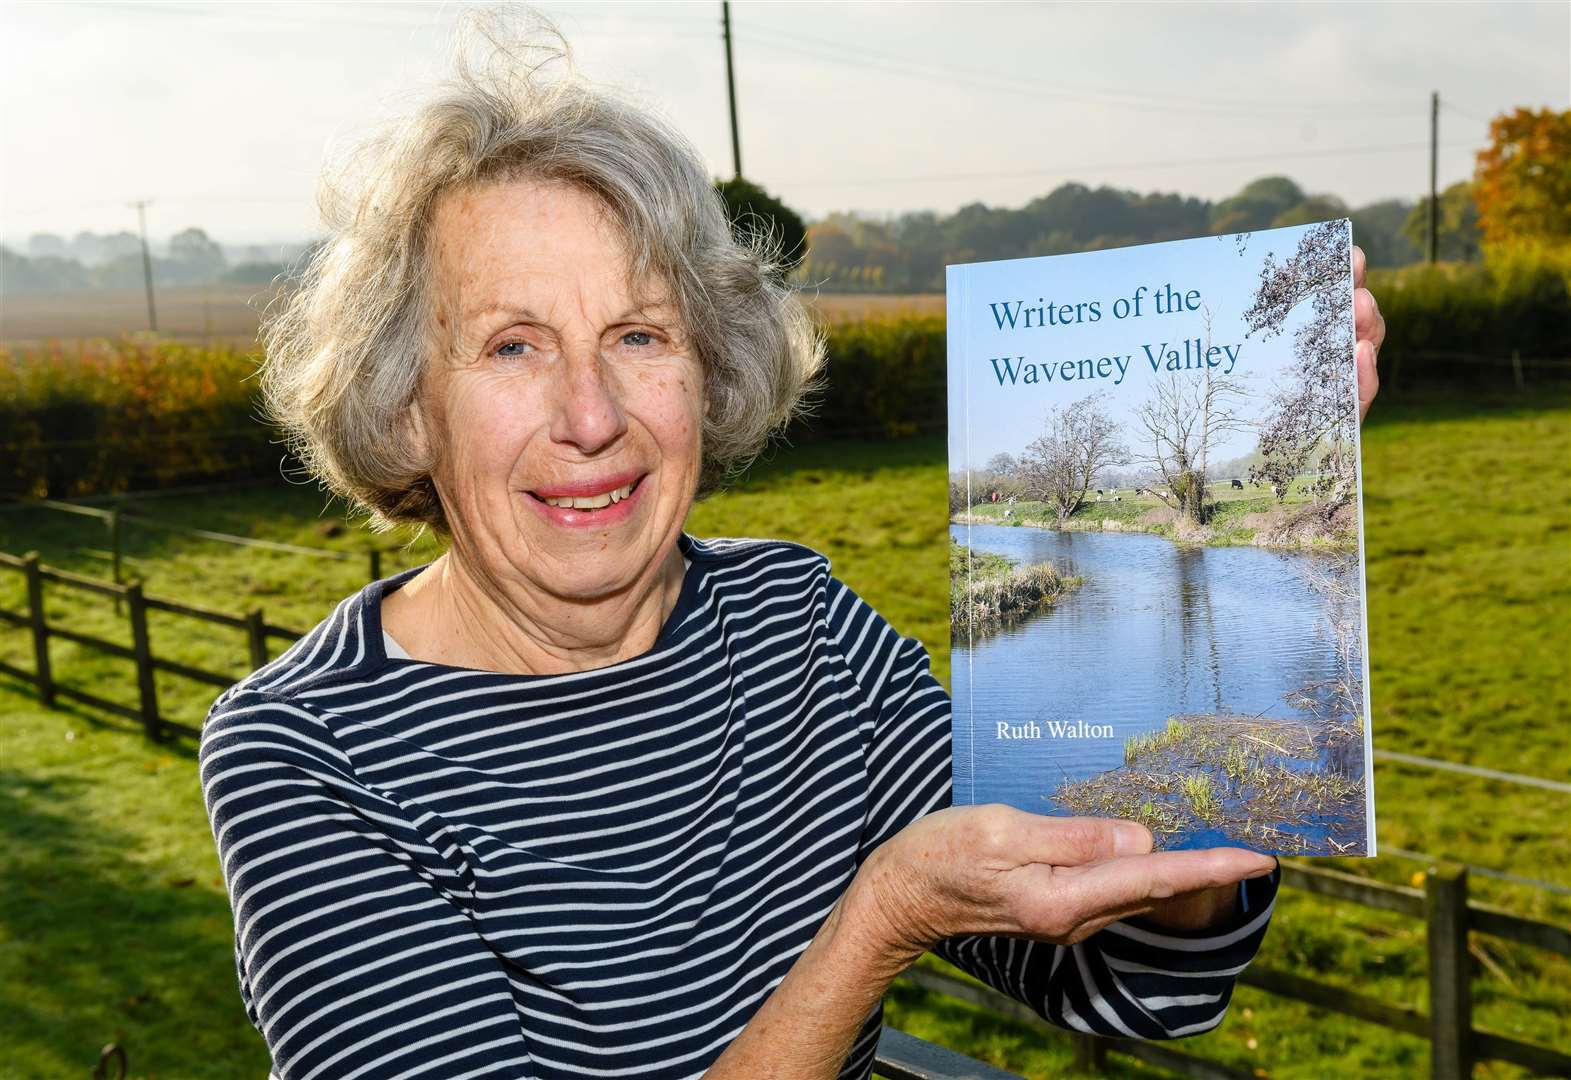 Book tells the tale of valley writers